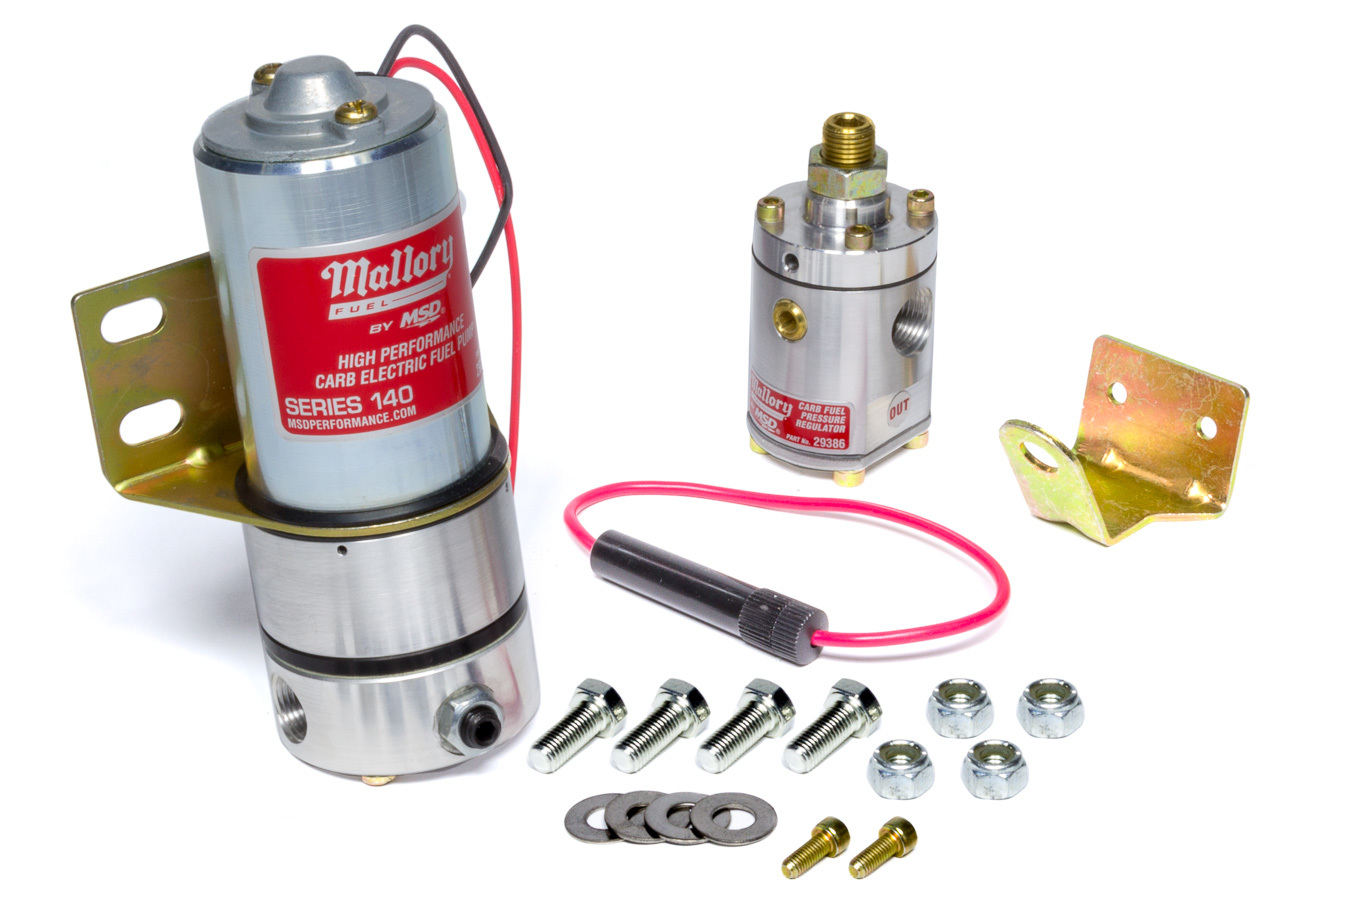 Mallory 29209 Fuel Pump, Comp Pump Series 140, Electric, In-Line, 120 gph at 6 psi, 3/8 in NPT Inlet, 3/8 in NPT Outlet, Non-Return Regulator Included, Gas, Kit